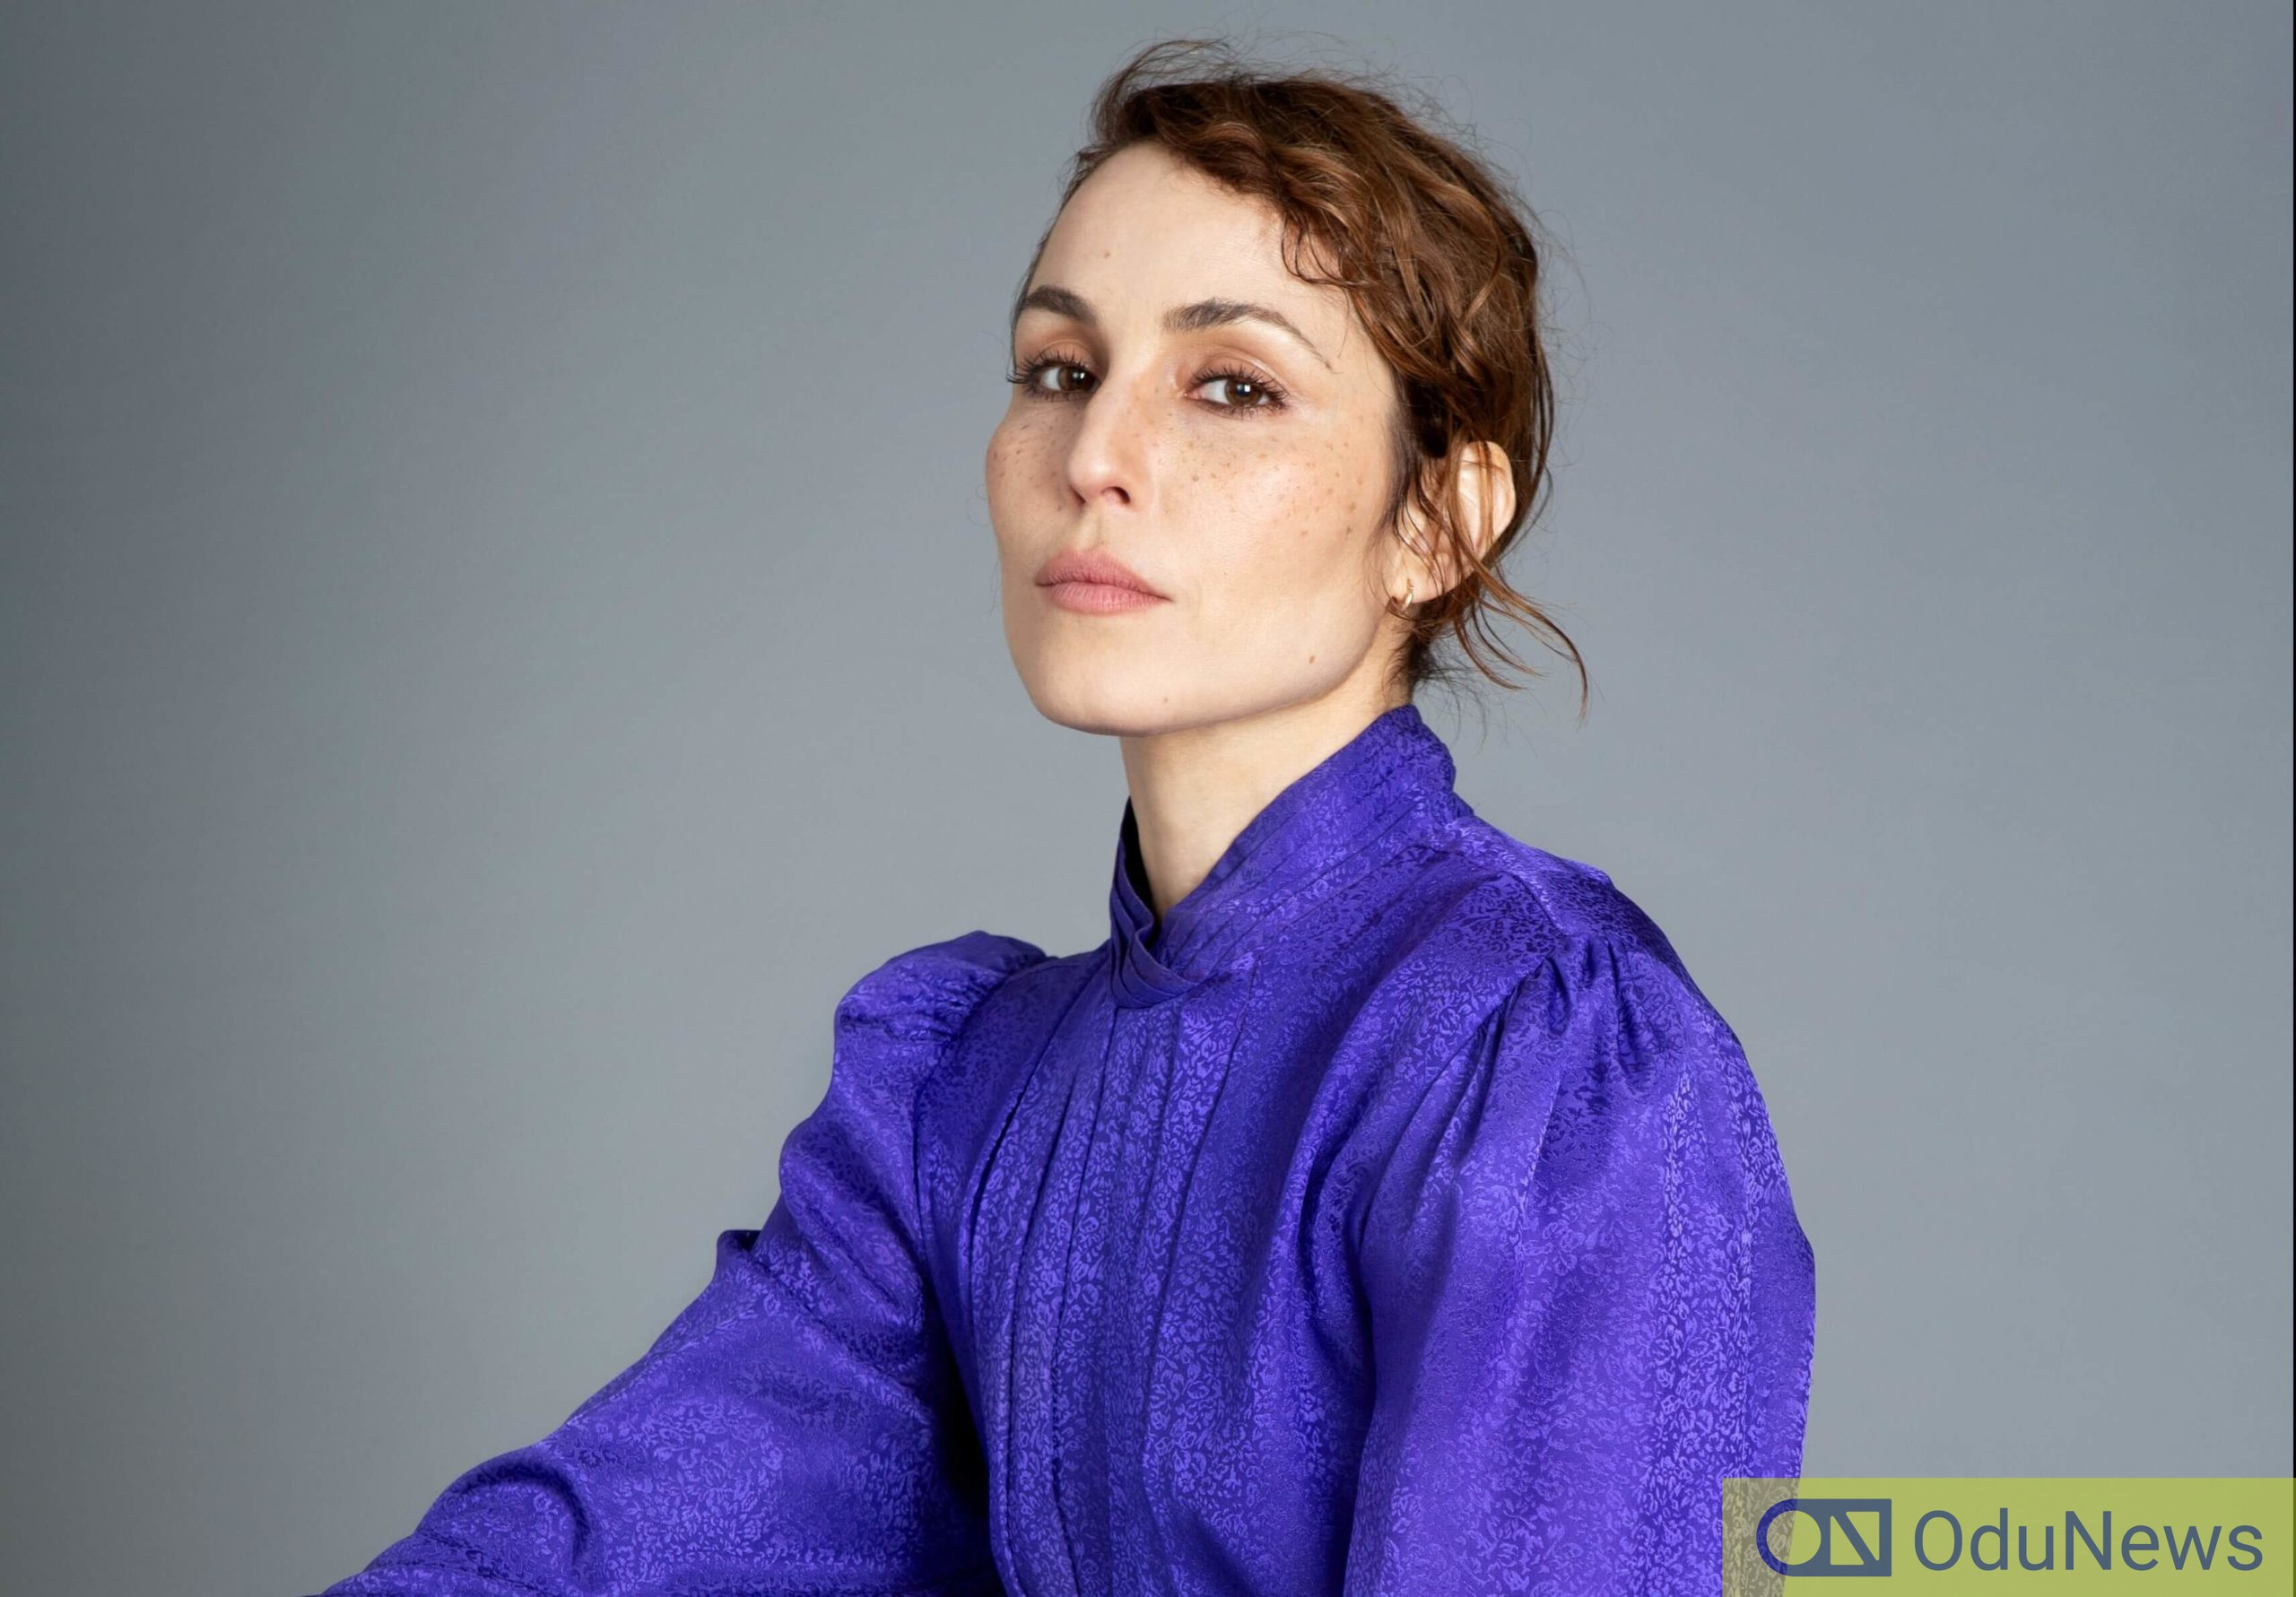 Noomi Rapace often takes on roles that are challenging